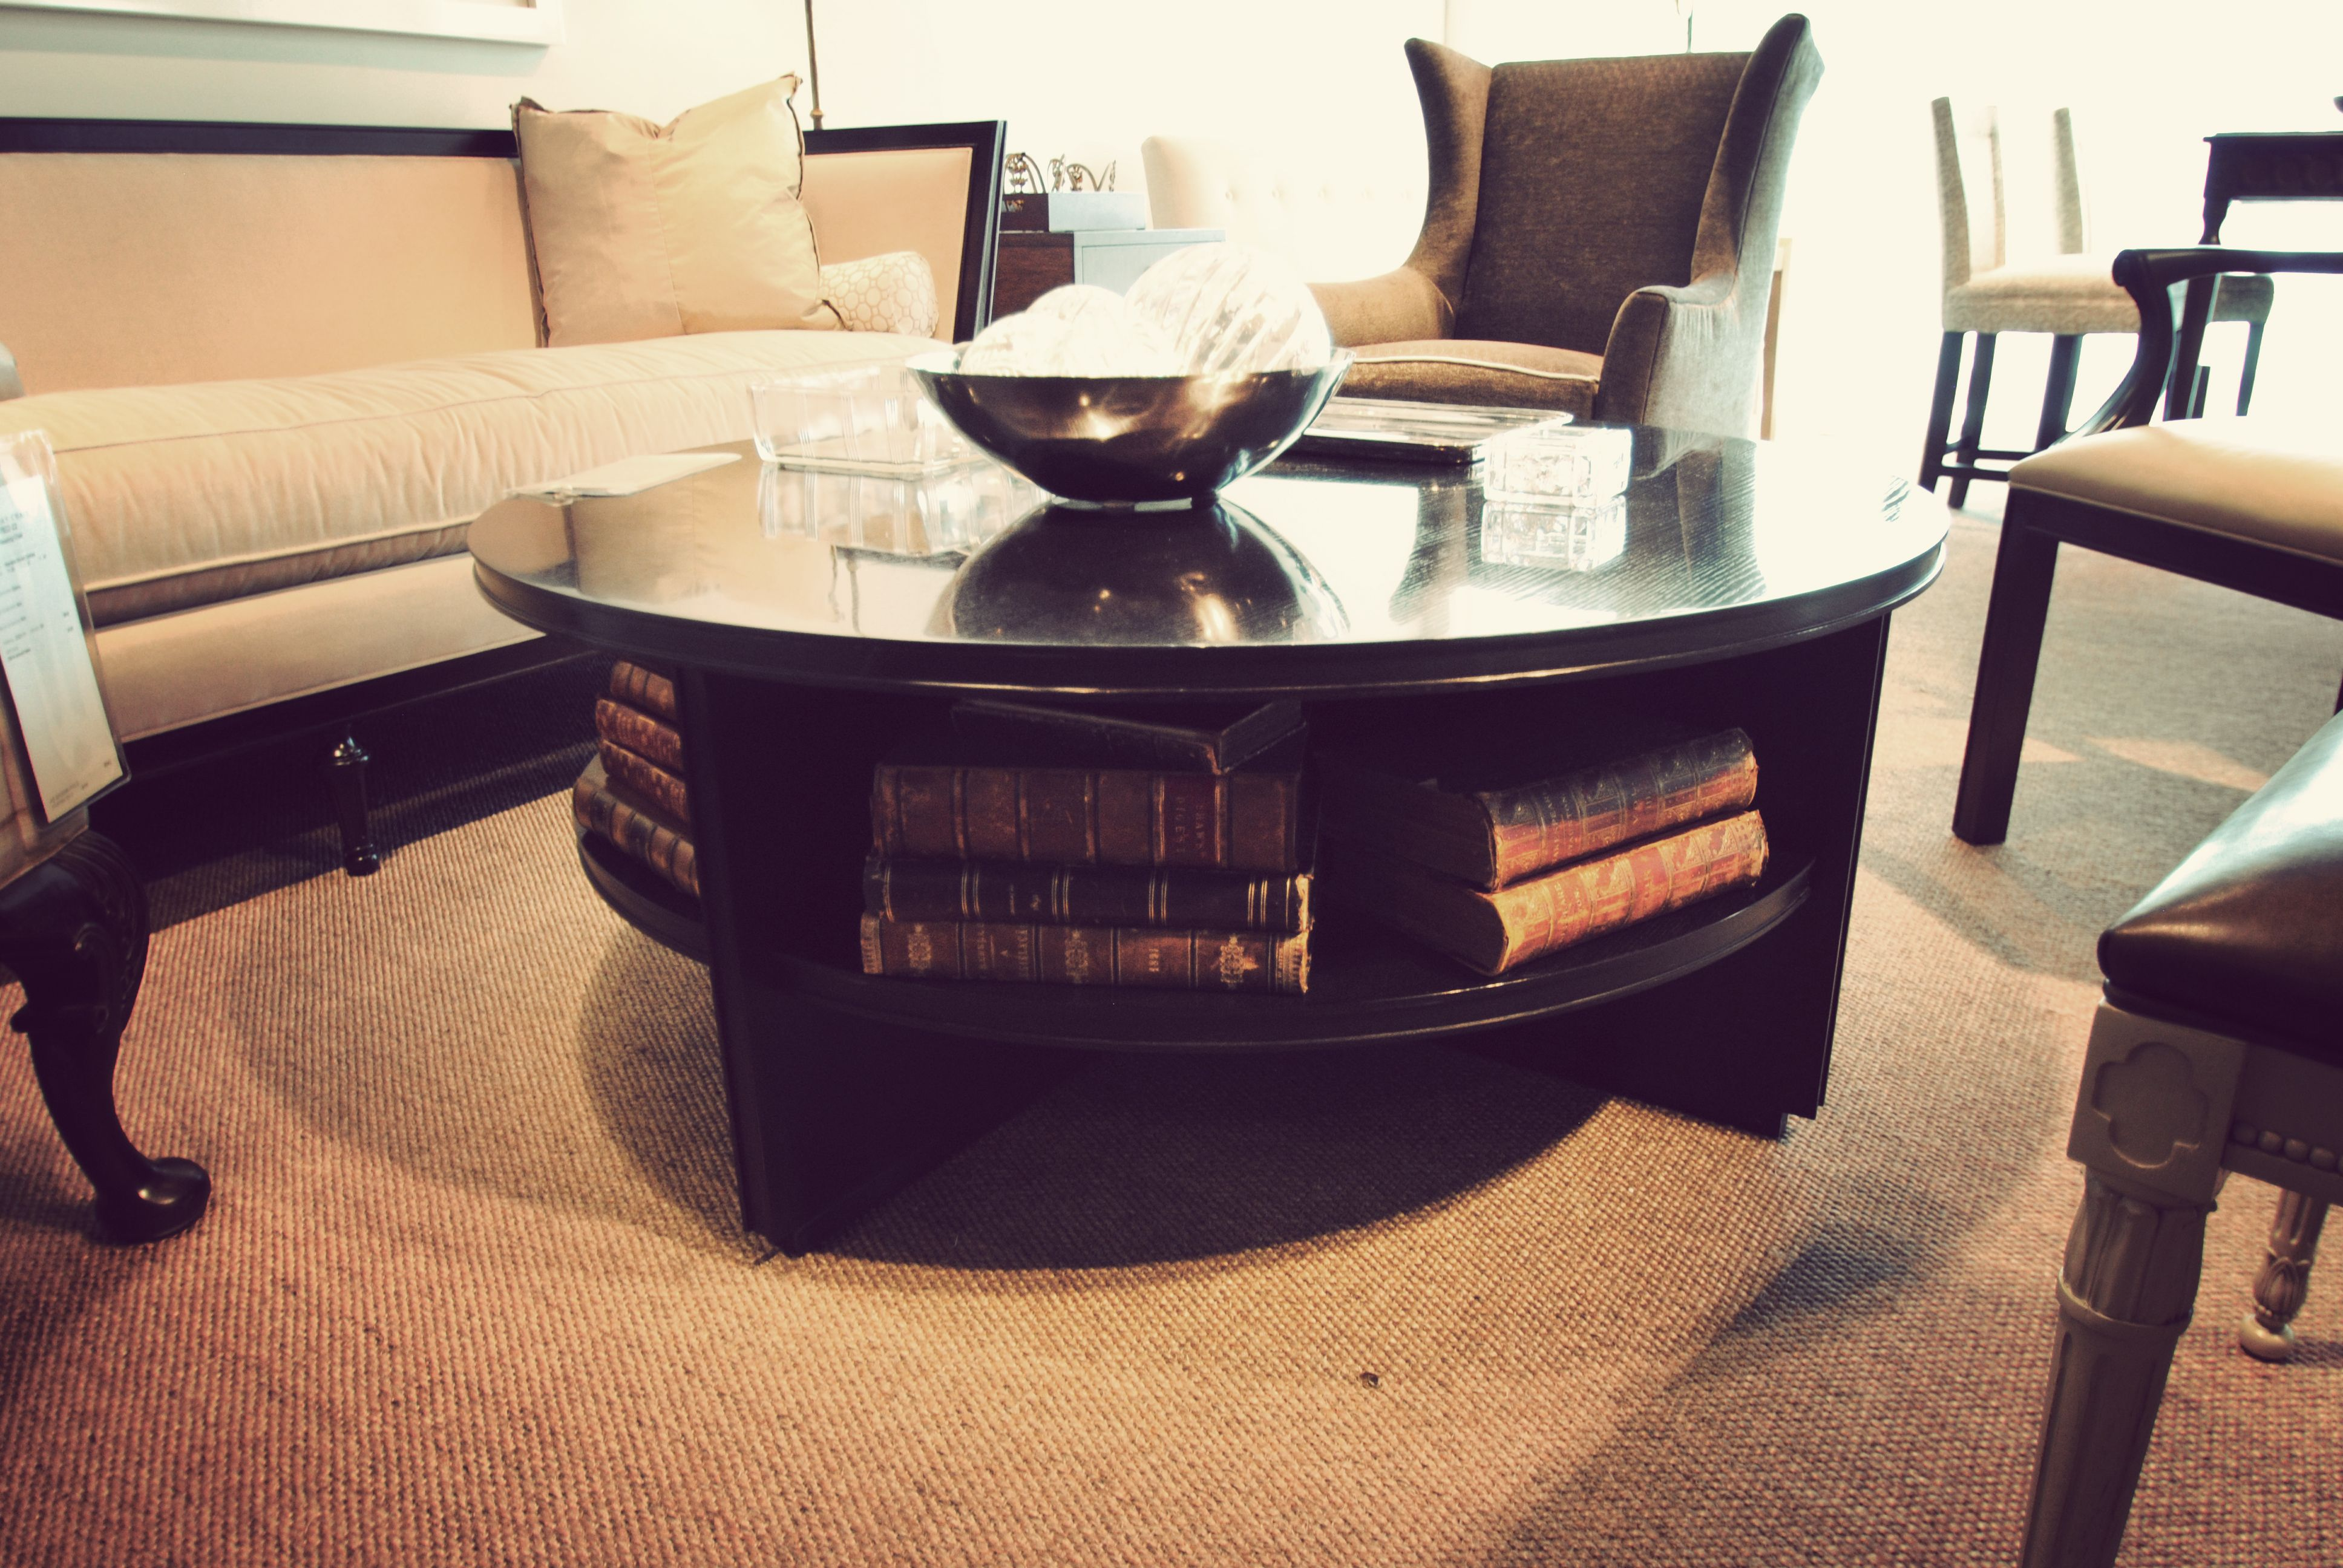 Round Coffee Table With Storage Coffee Table Sun Room Decor Coffee Table Design [ 2592 x 3872 Pixel ]